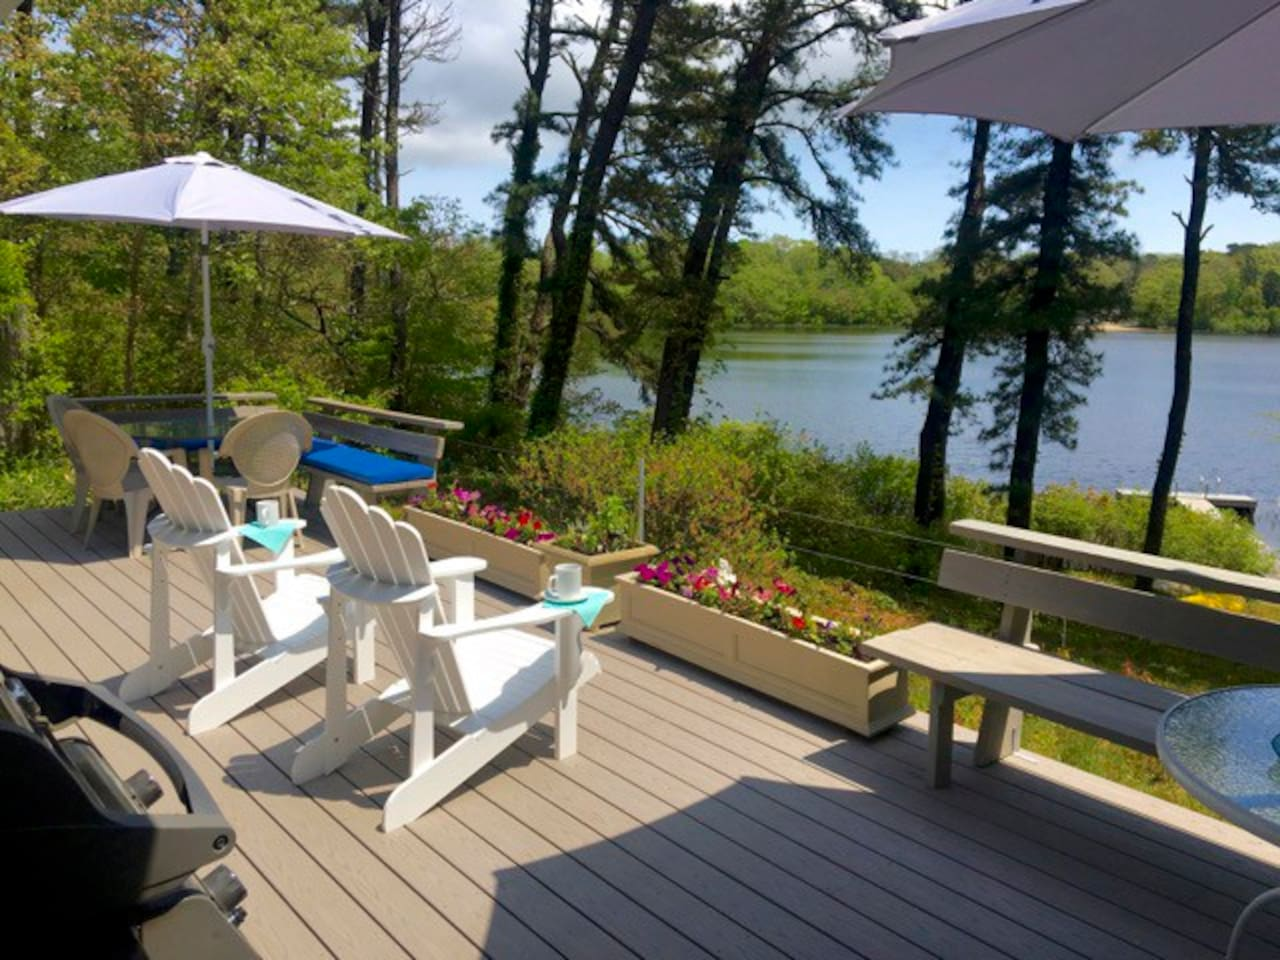 Private lakefront living with 2 decks, dock with full amenities and free linens